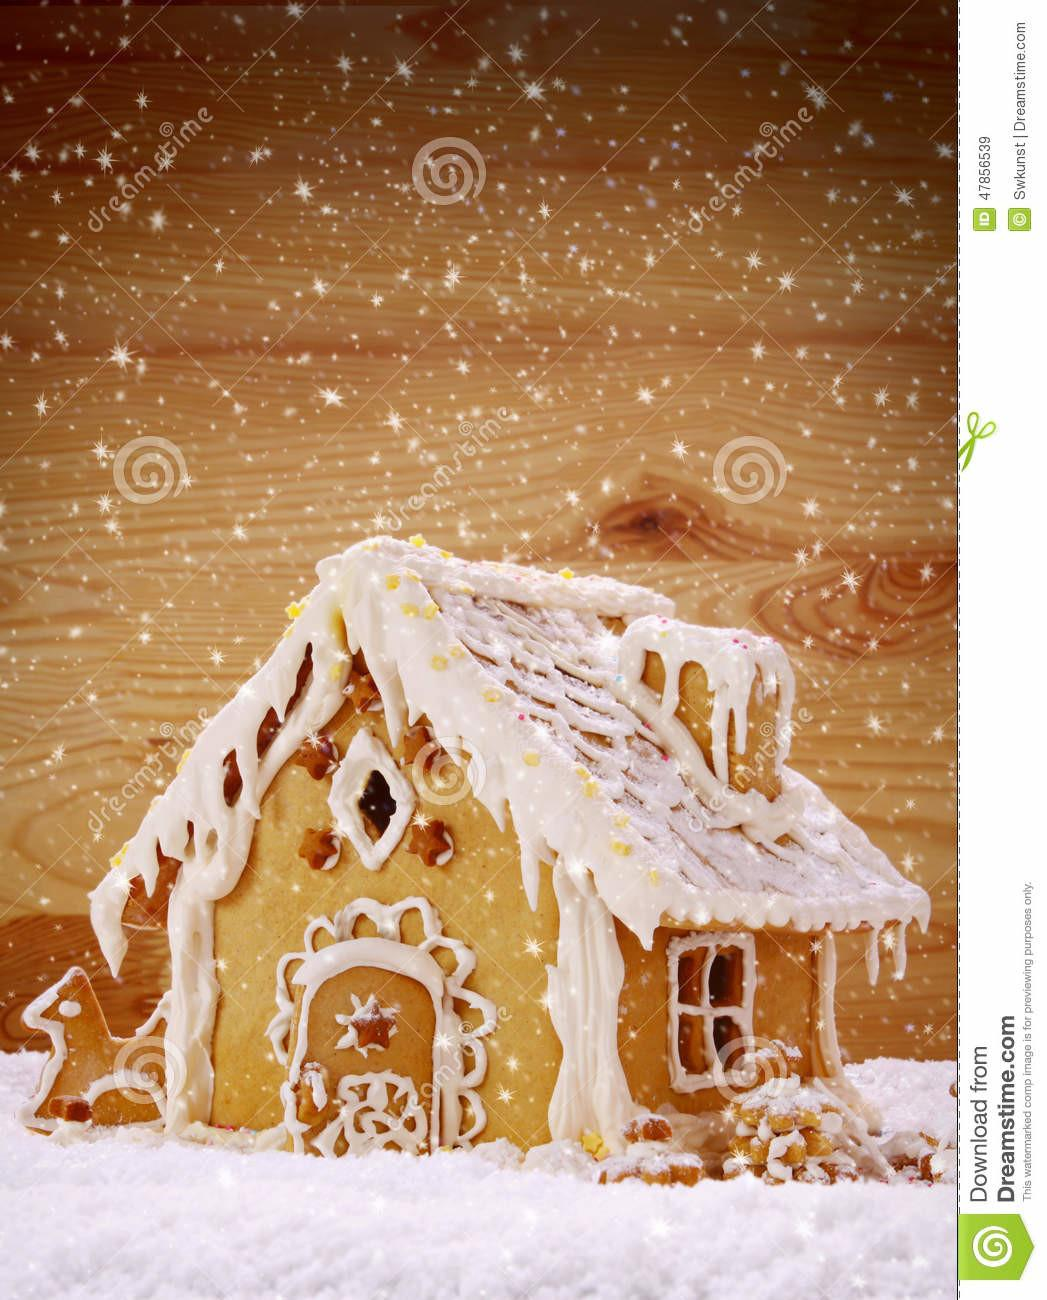 Winter Holiday Gingerbread House Stock